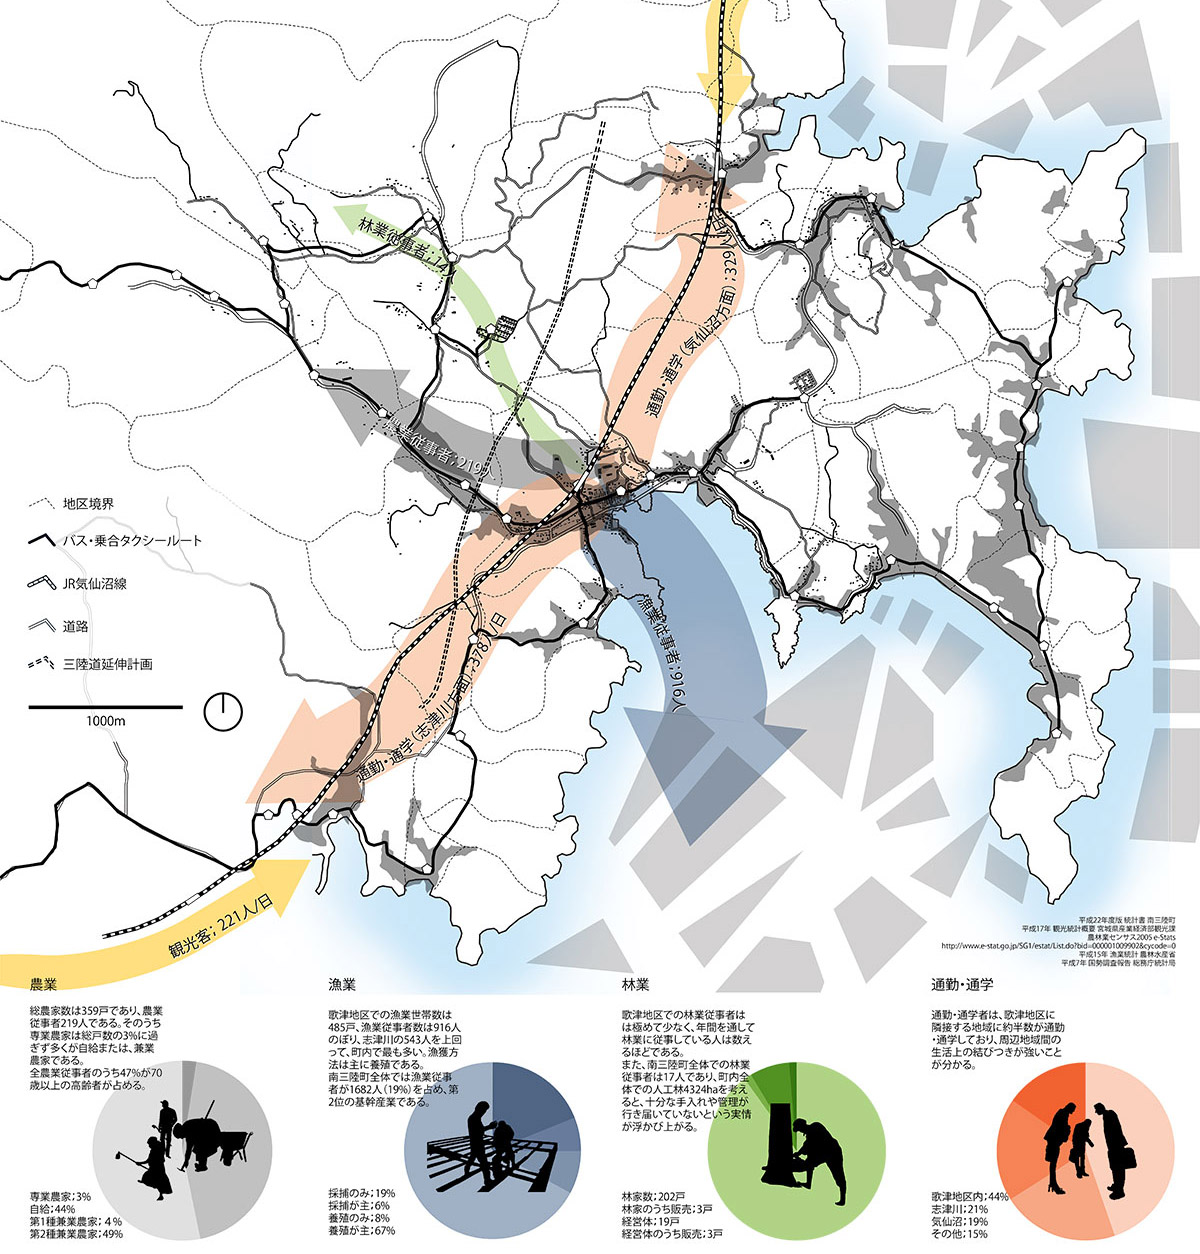 A map detailing the former livelihoods and commute patterns of Utatsu residents.